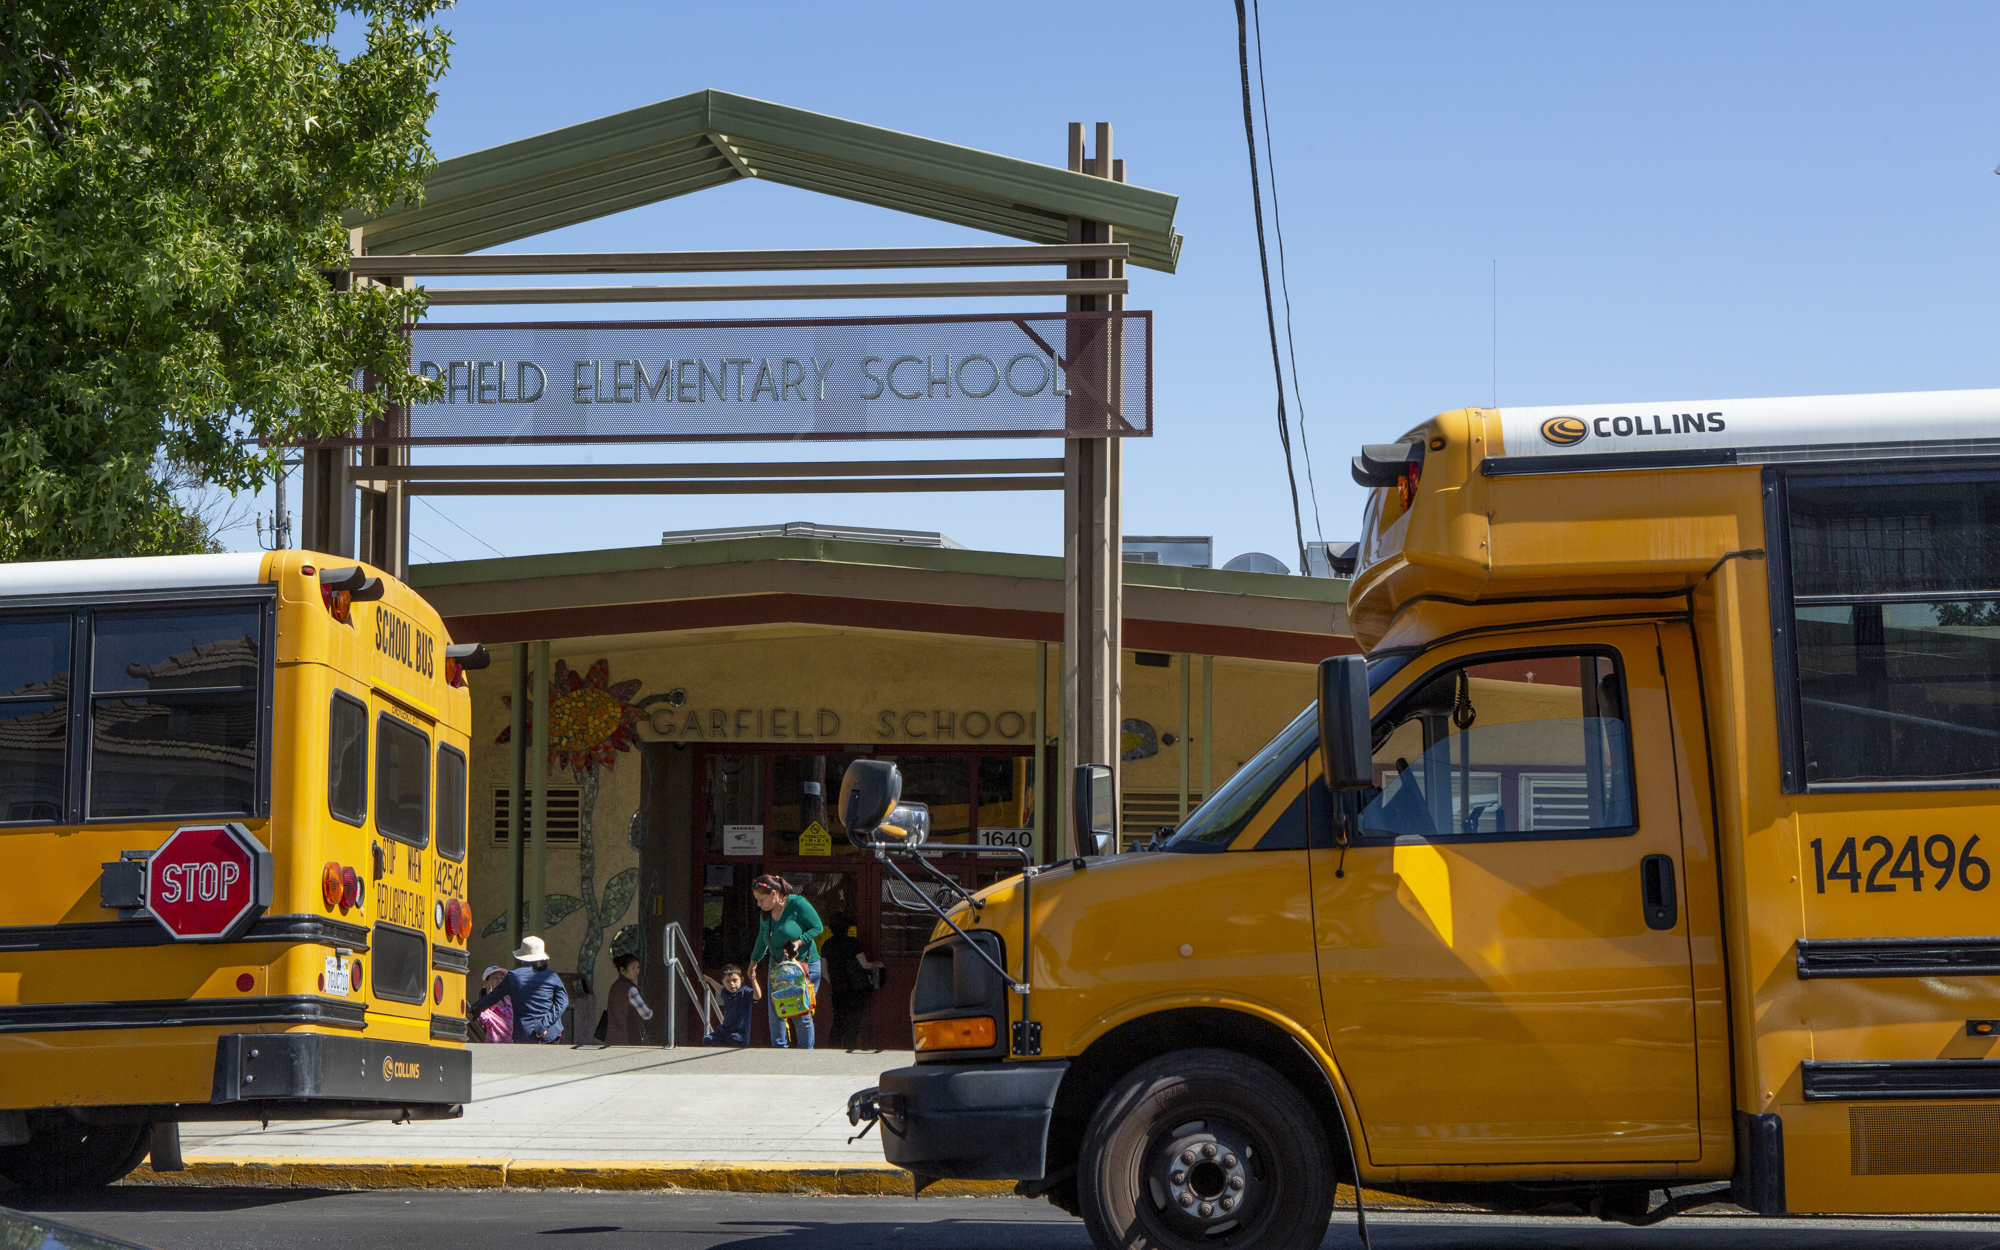 School buses line up outside of Garfield Elementary School in Oakland at the end of the day for pickup on September 6, 2019.